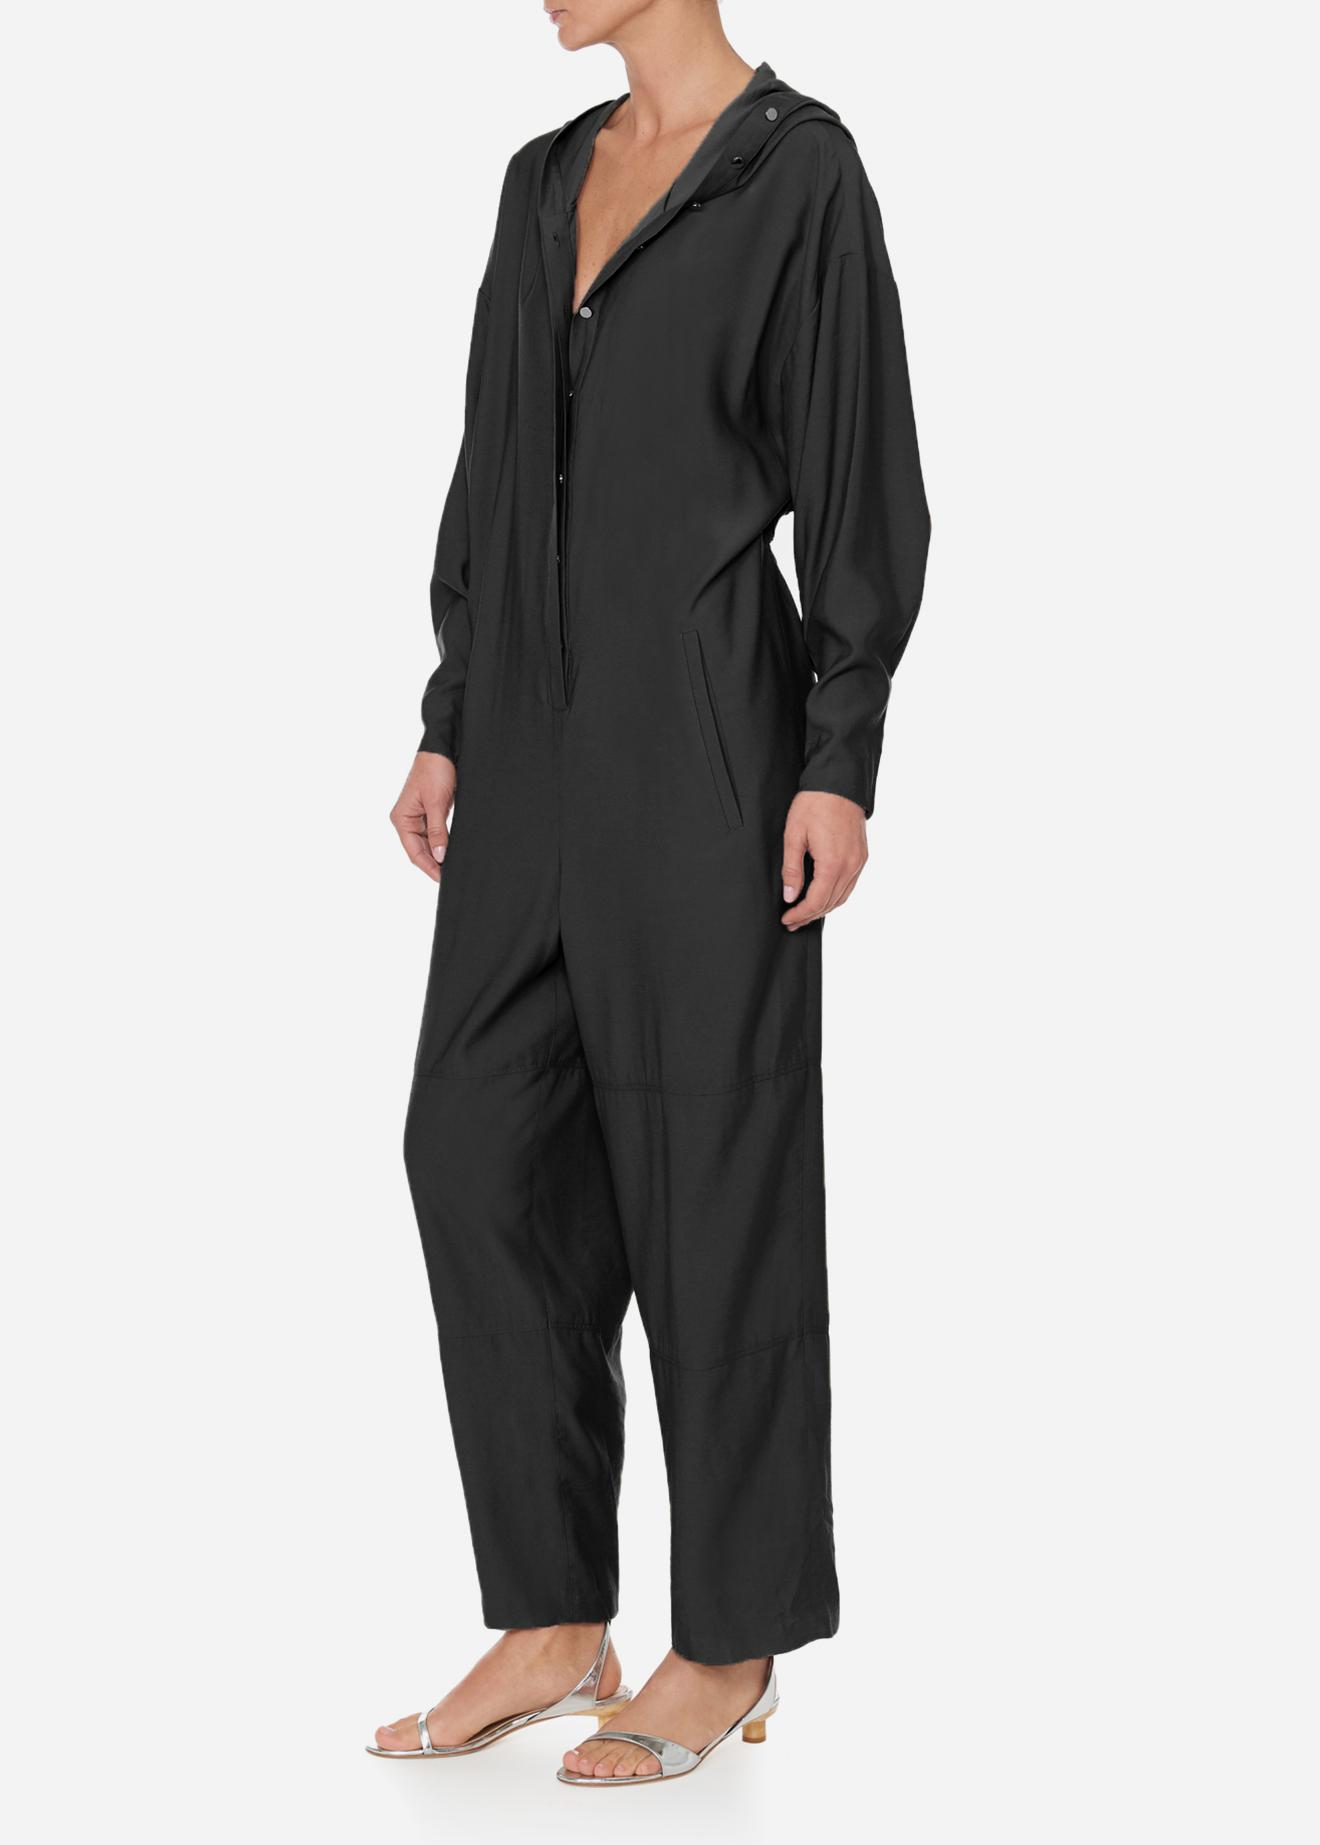 44eb6f4cdd9 ... Hoodie Jumpsuit With Open Back - Lyst. View fullscreen